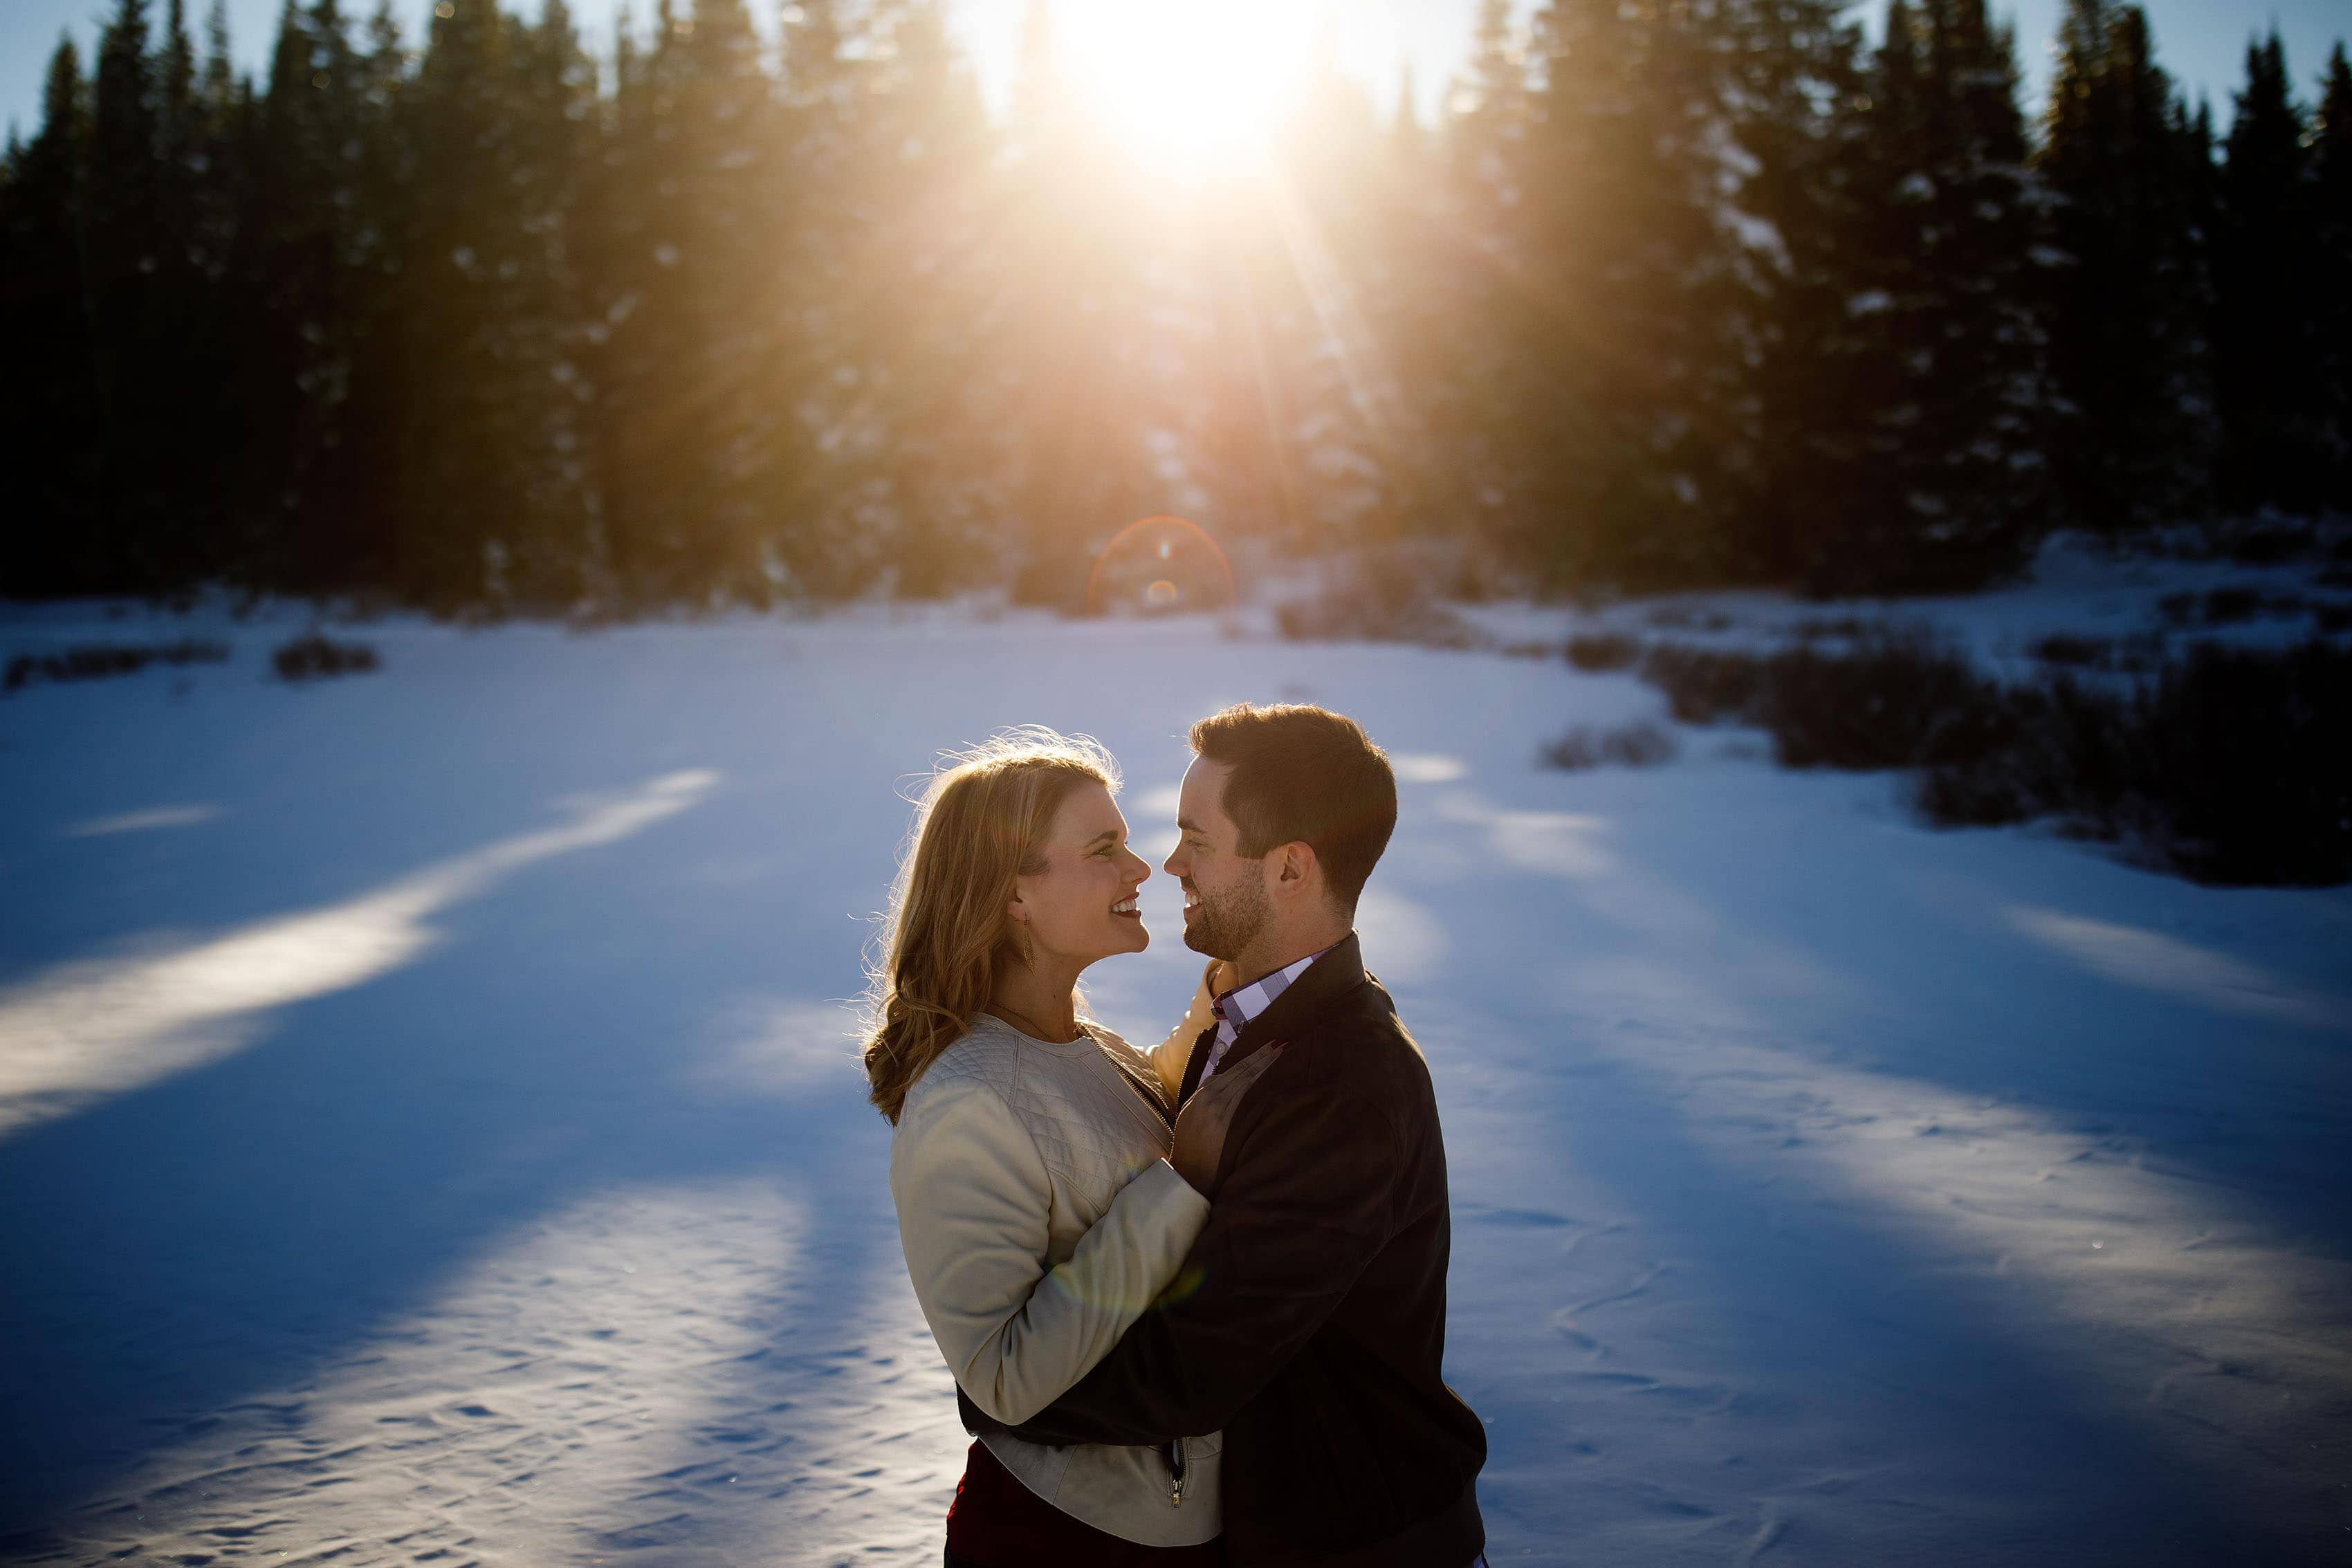 Micah and Julia pose together in the snow as the sun sets behind them on Shrine Pass near Vail